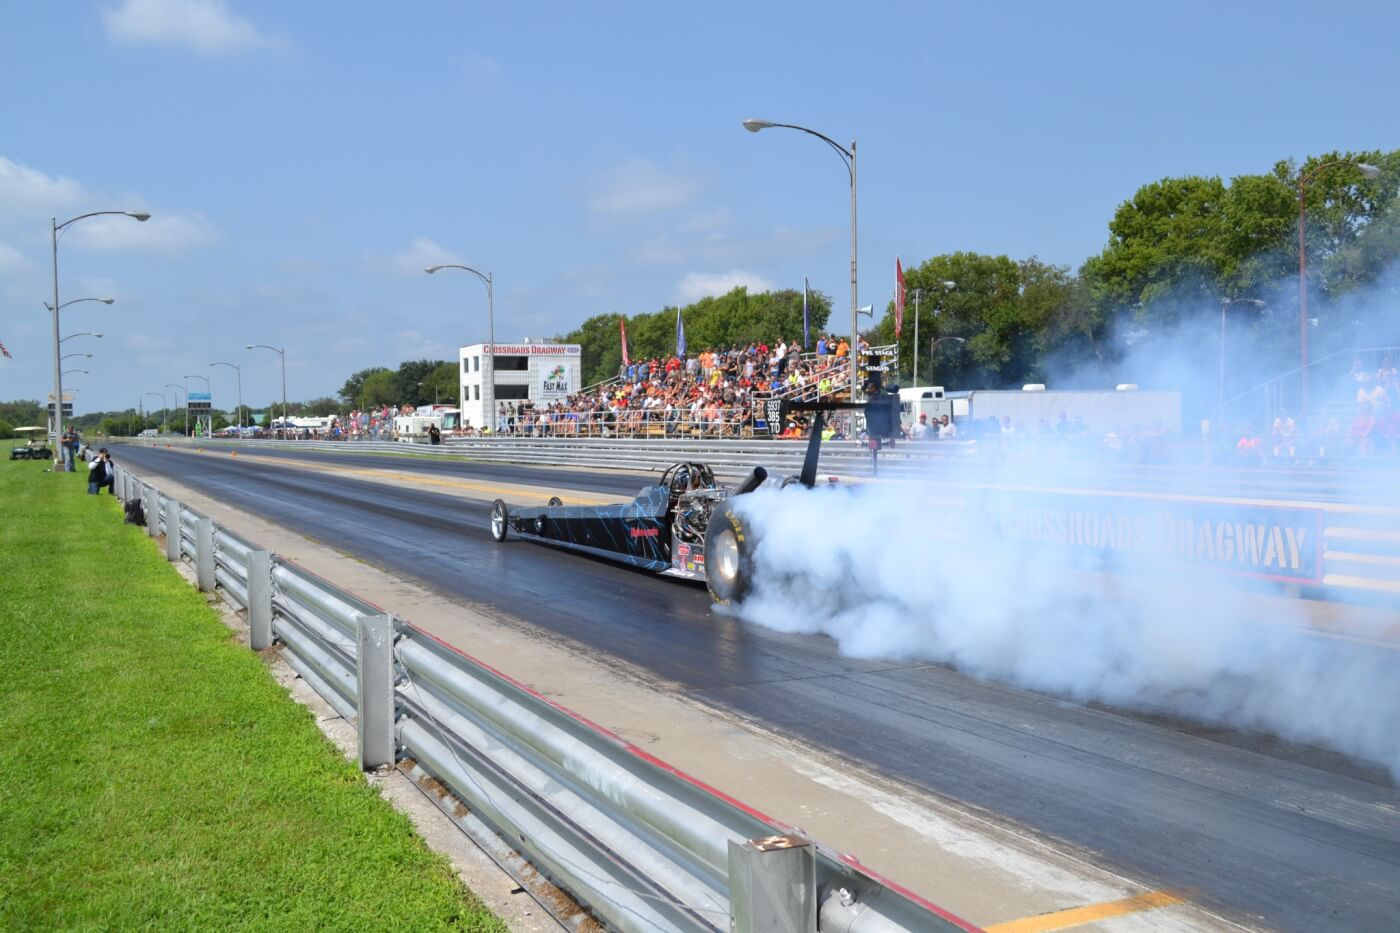 The quickest and fastest diesel drag vehicle is Scheid Diesel's Dragster, which has run 6.32 at 228mph in the quarter-mile! The Scheid dragster uses a 2,500-hp Cummins-based engine hooked through a triple-disc clutch to a Lenco transmission.